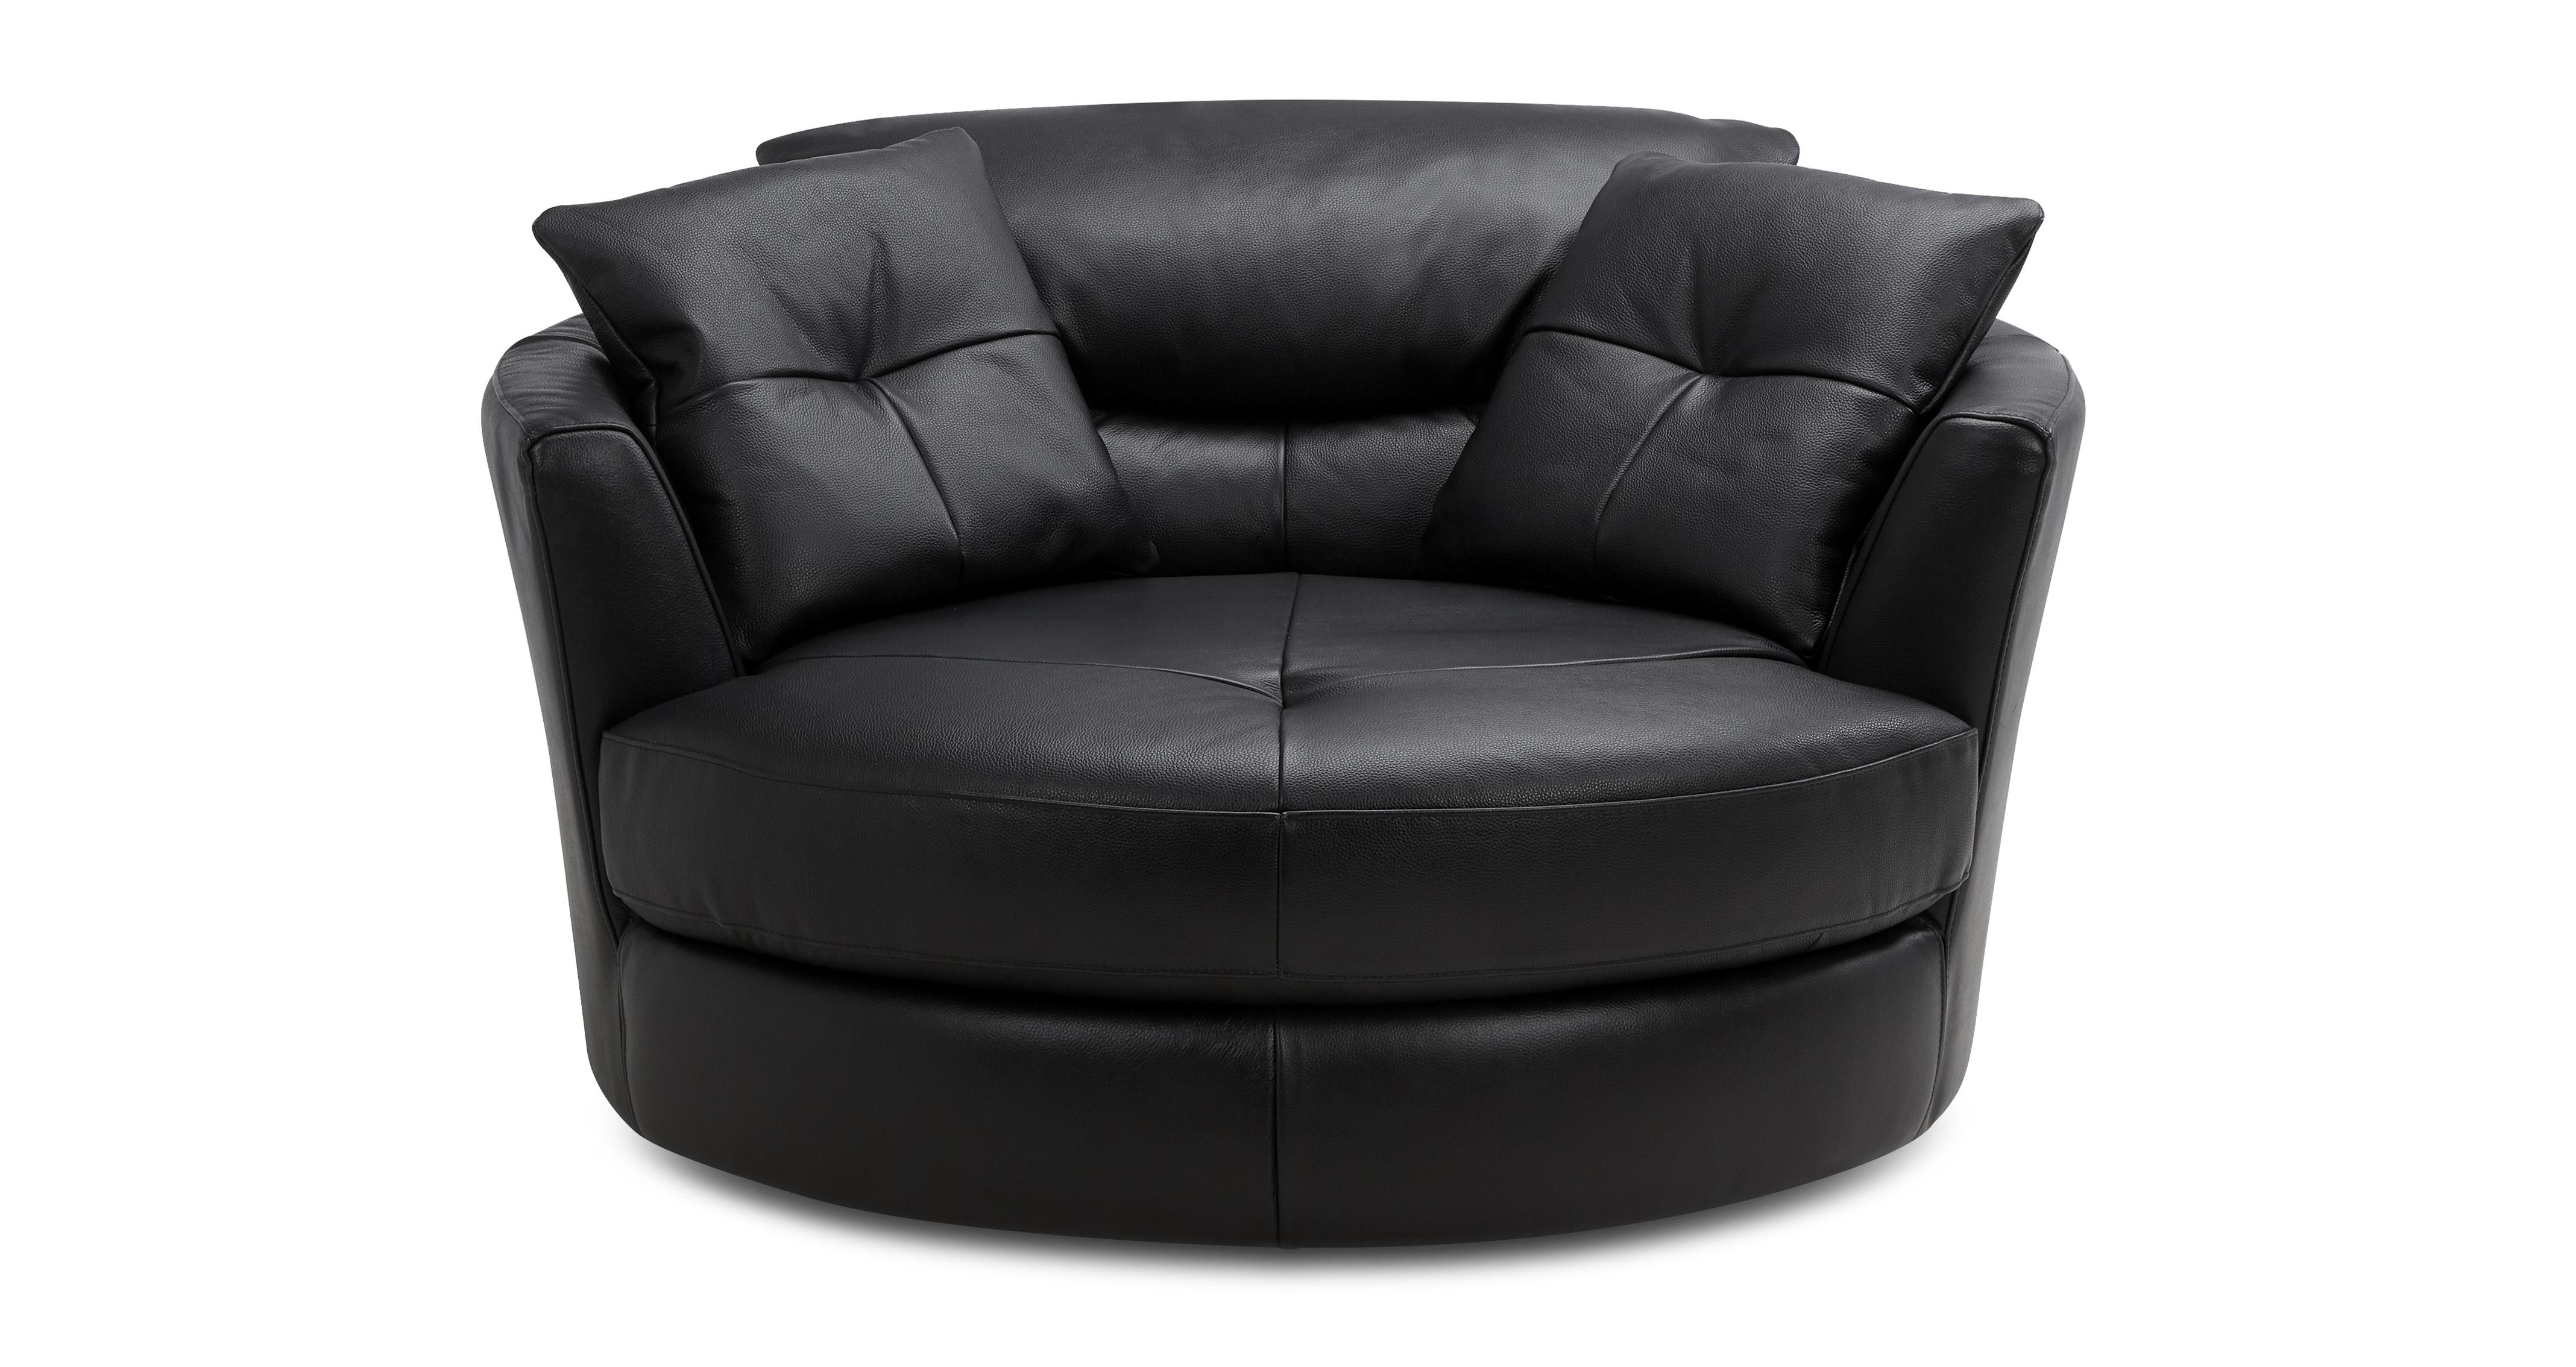 Stage Large Swivel Chair New Club Dfs Ireland